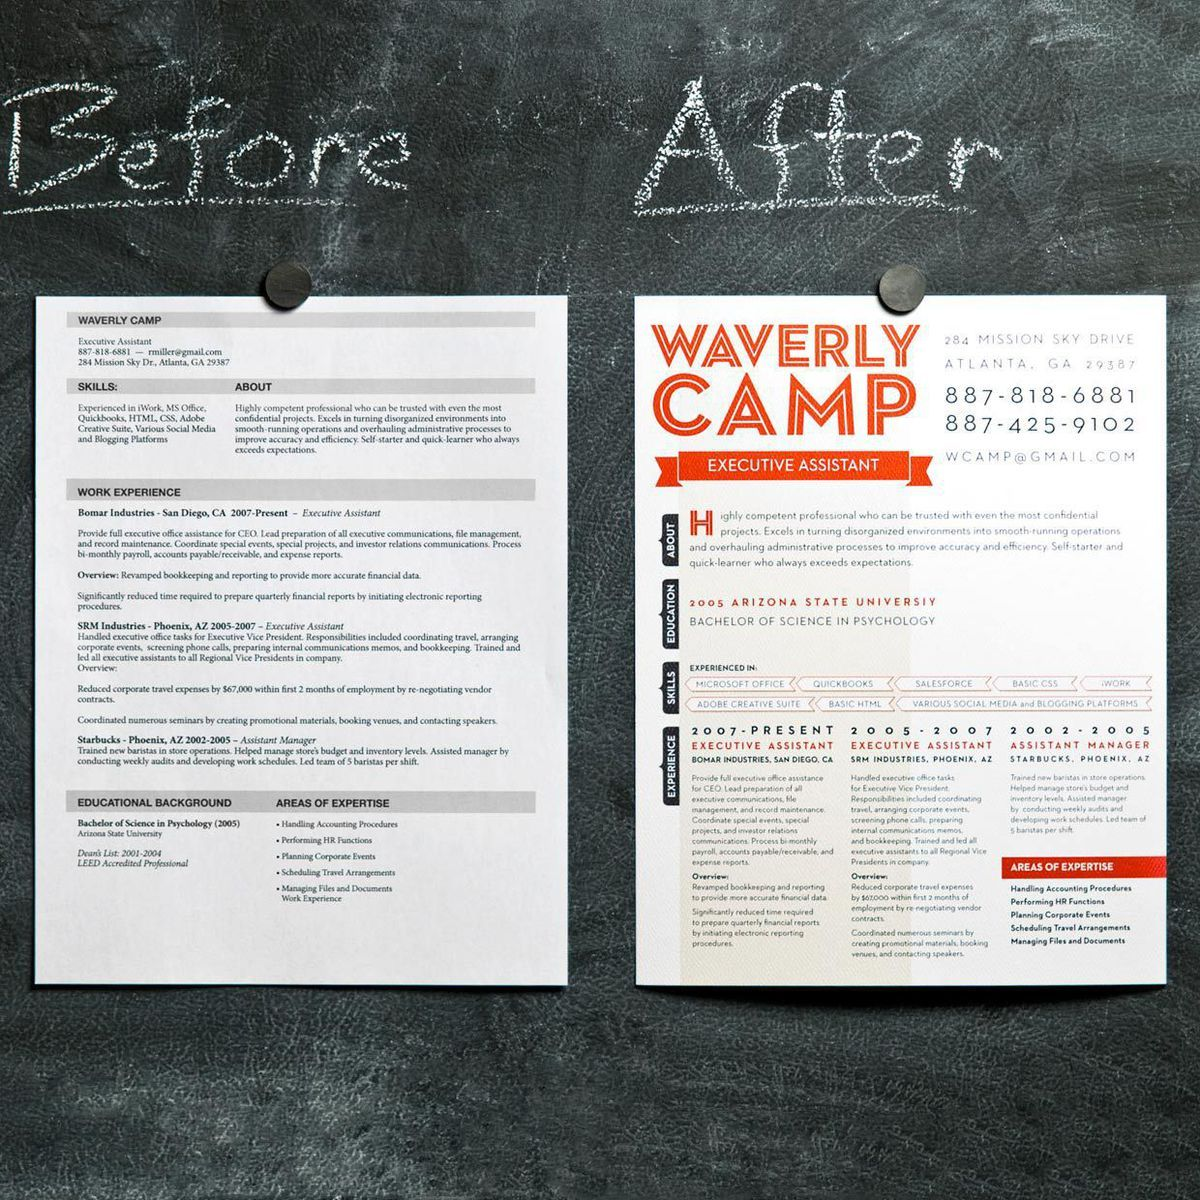 2 page resume service by loft resumes - Examples Of 2 Page Resumes